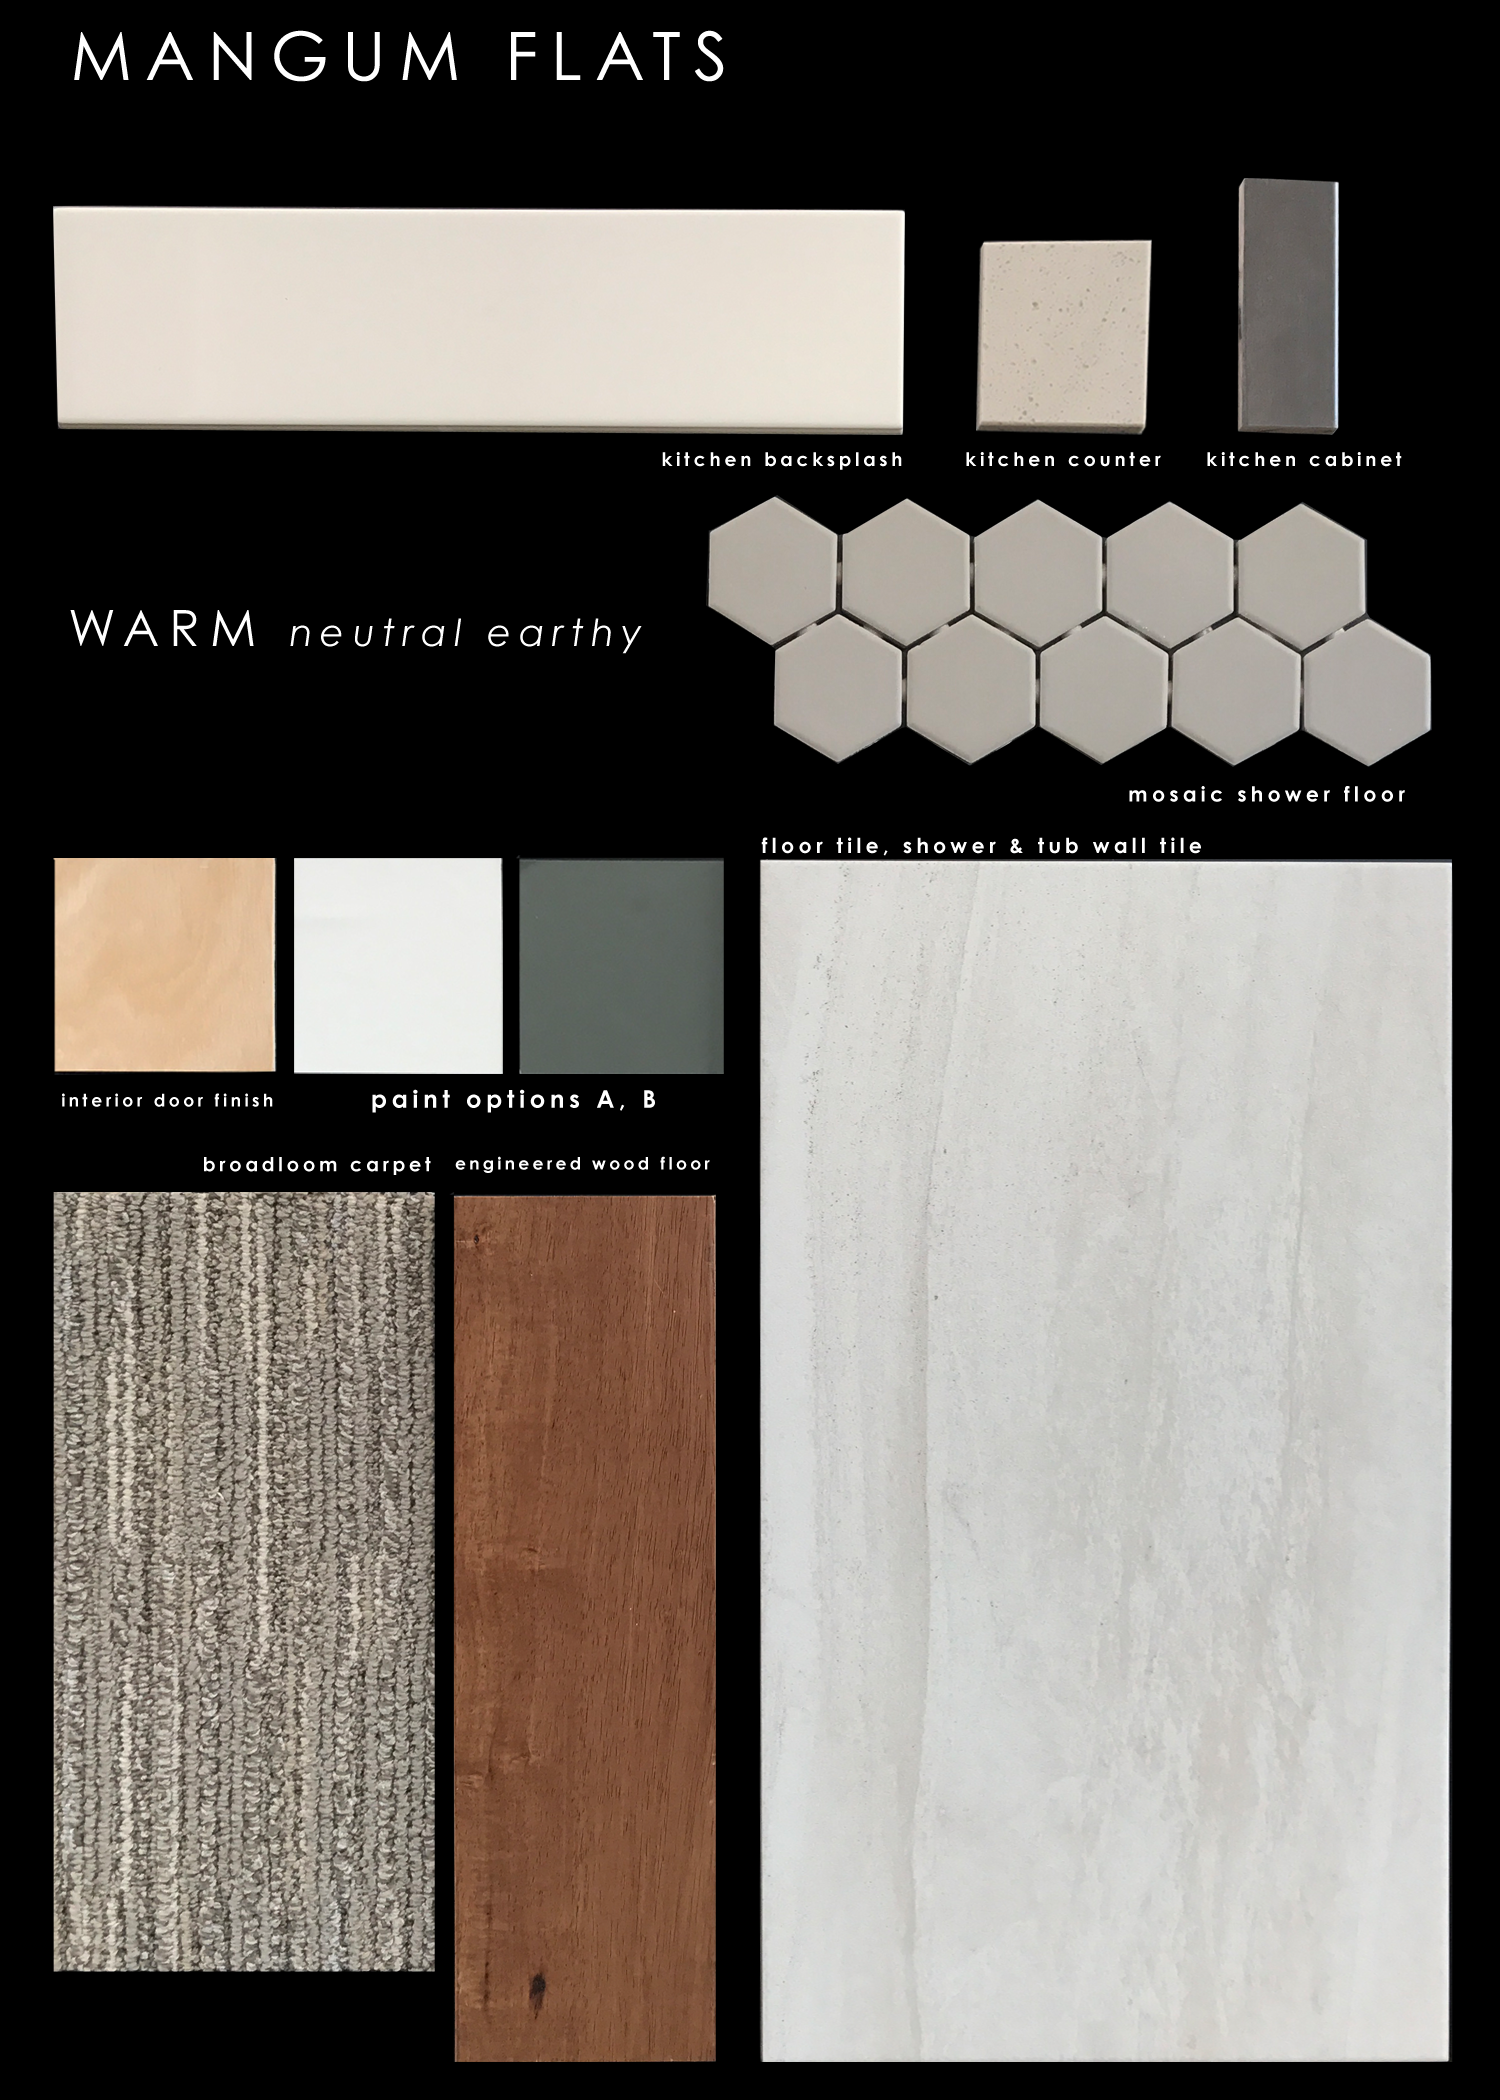 Finish Package: Warm neutral earthy